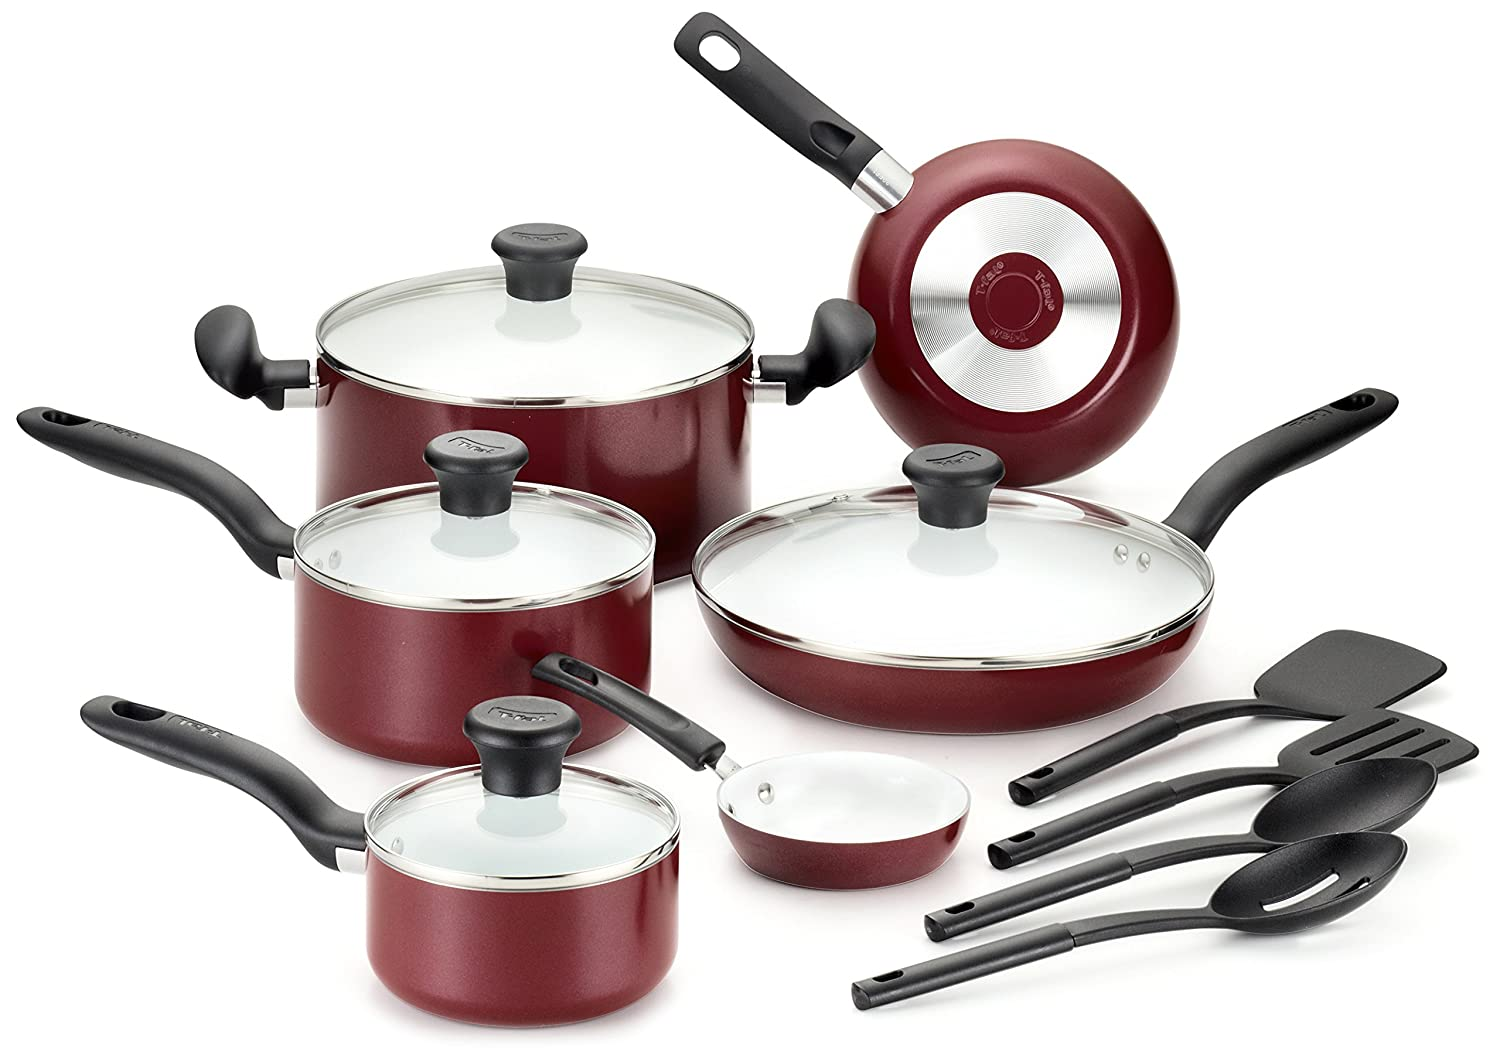 Ceramic Coated Cookware